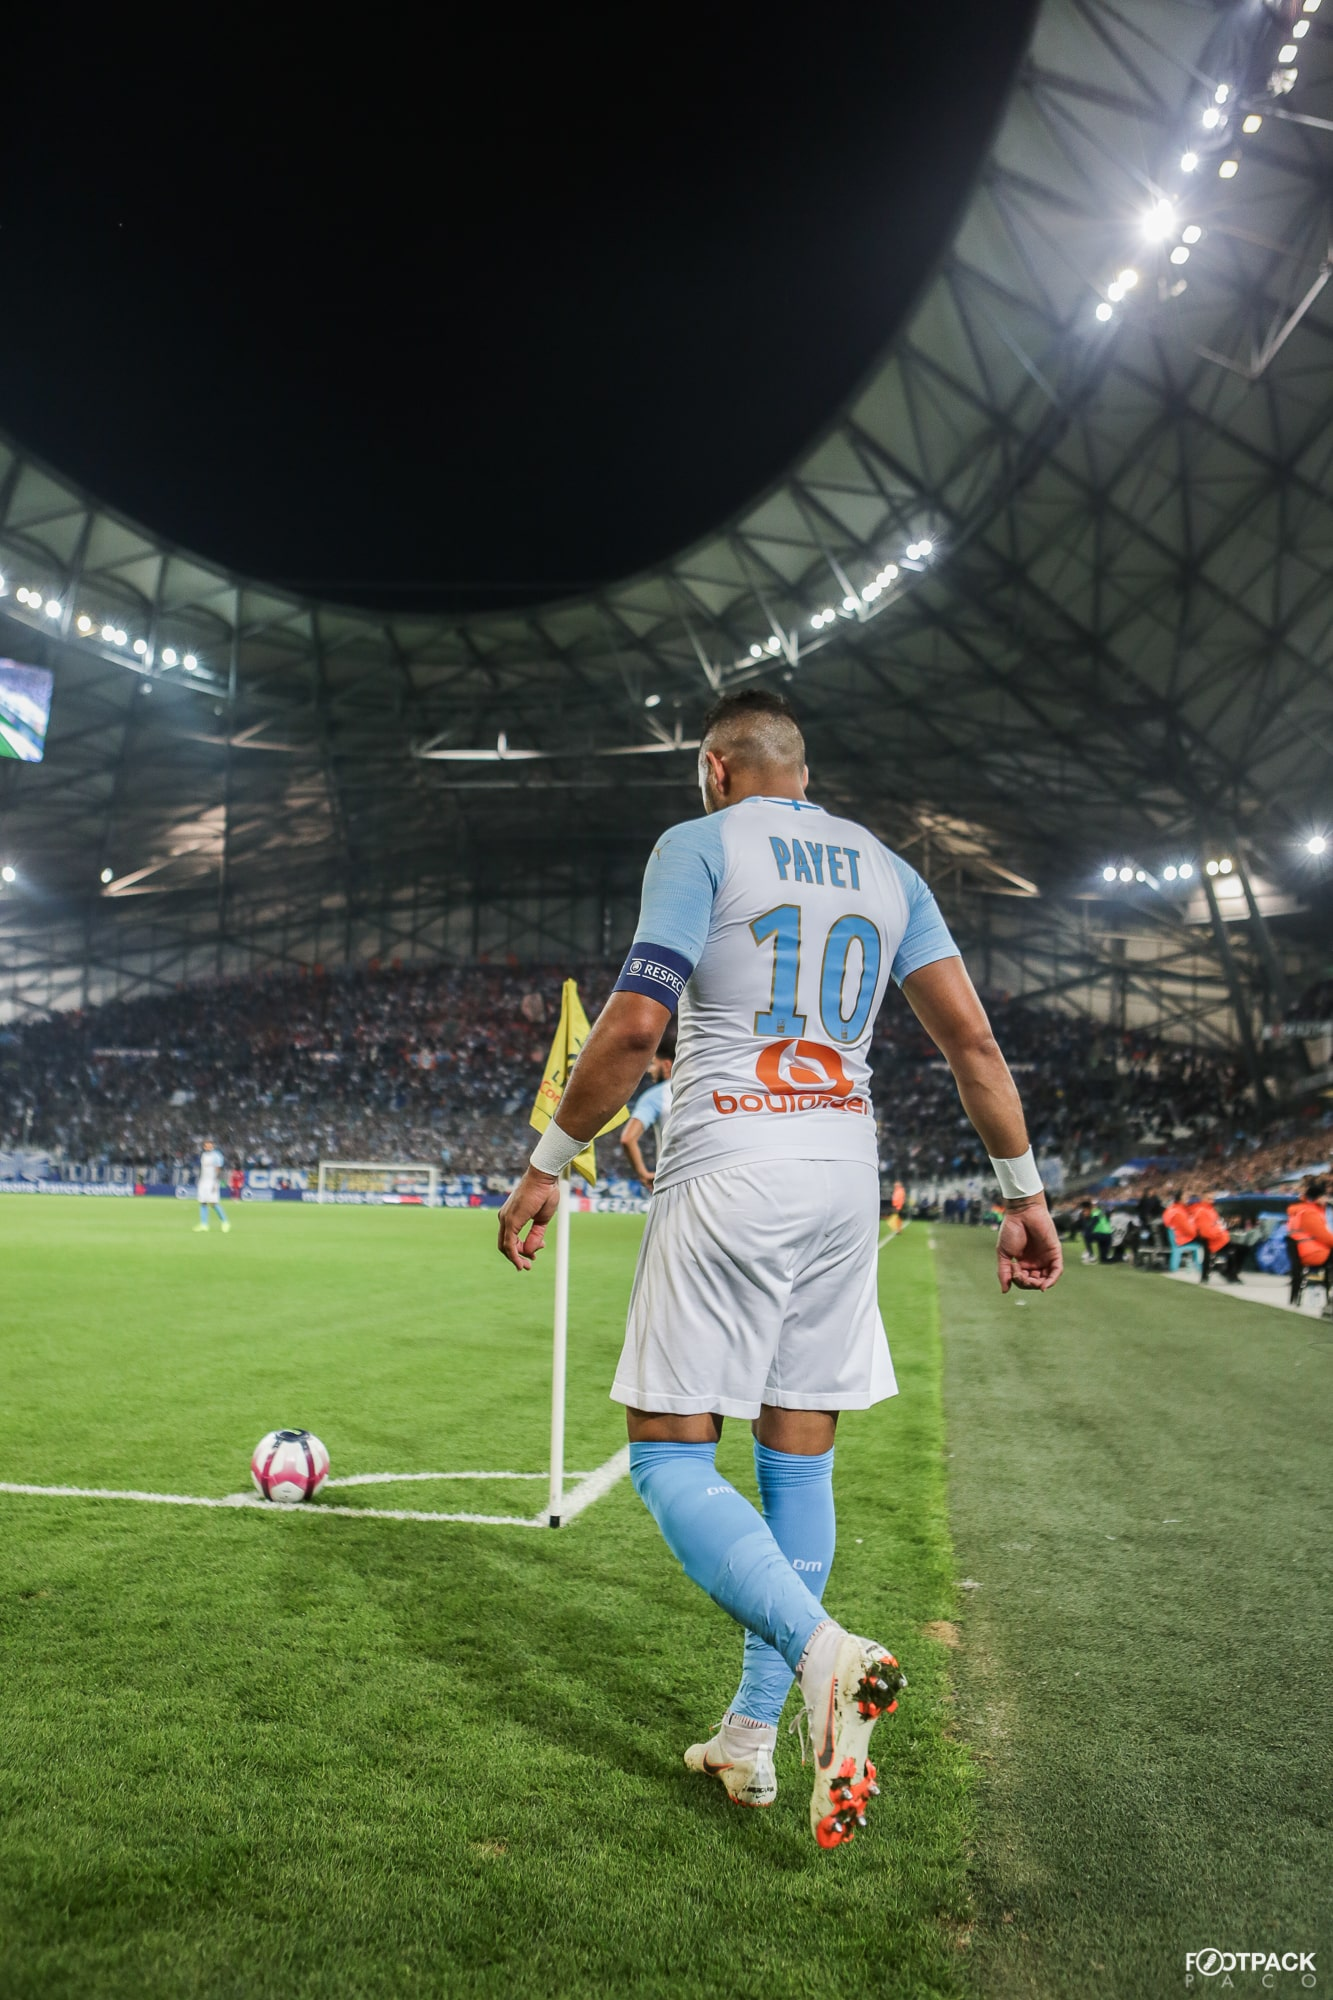 dimitri-payet-top-50-photos-footpack